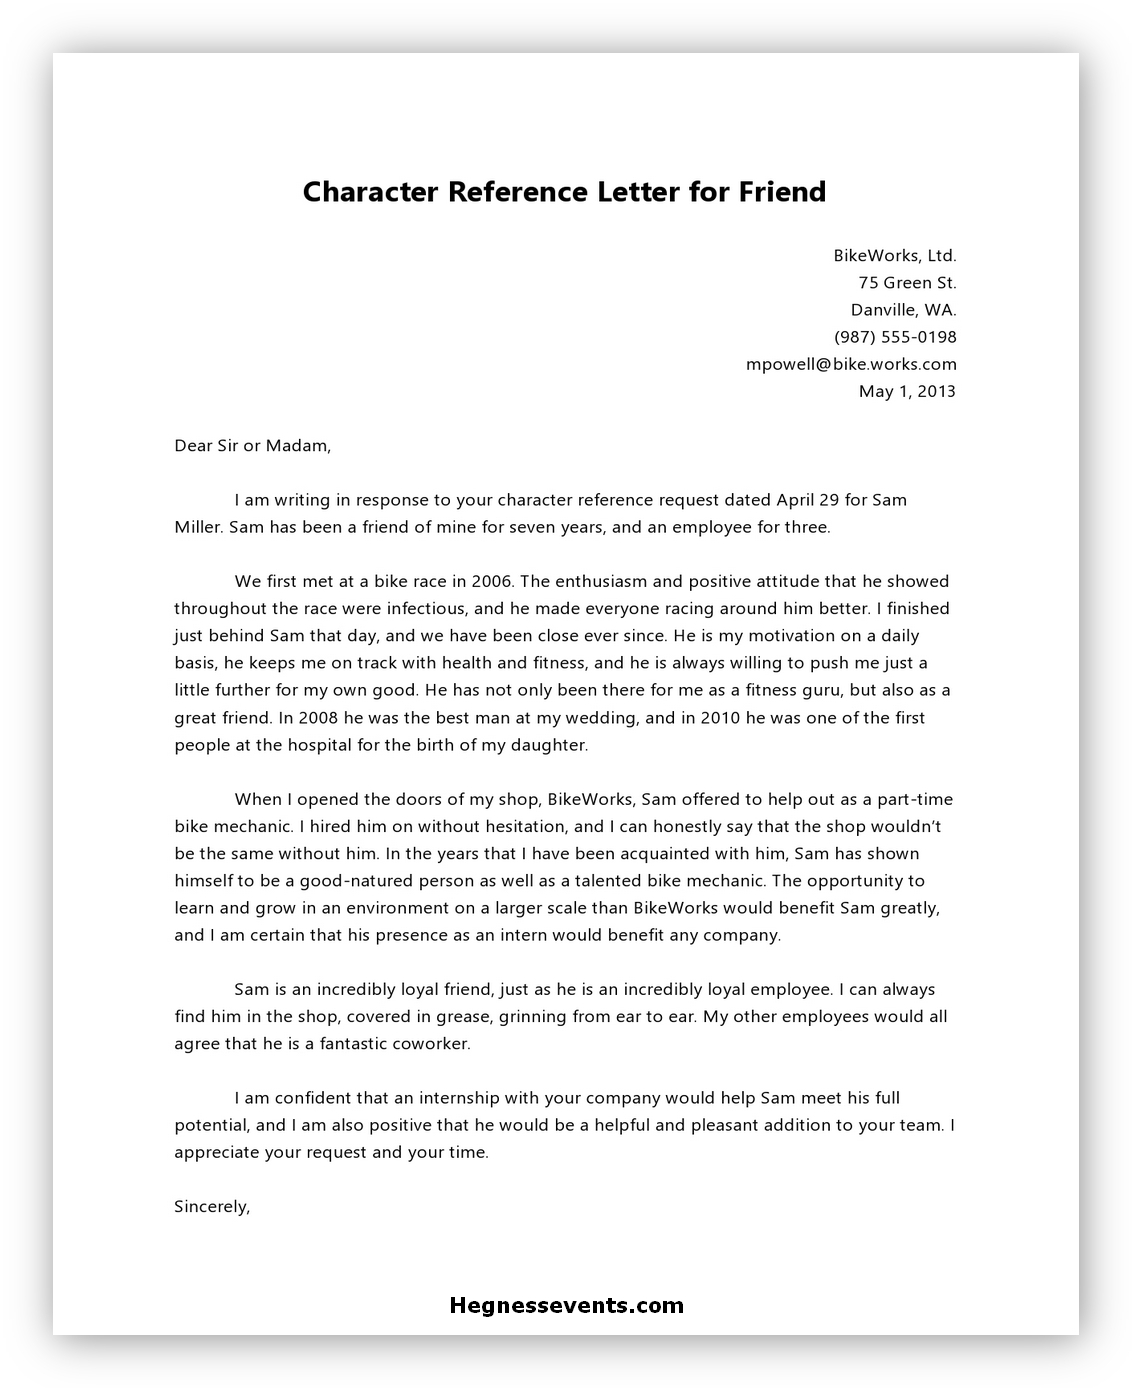 Letter of Reference Character 05